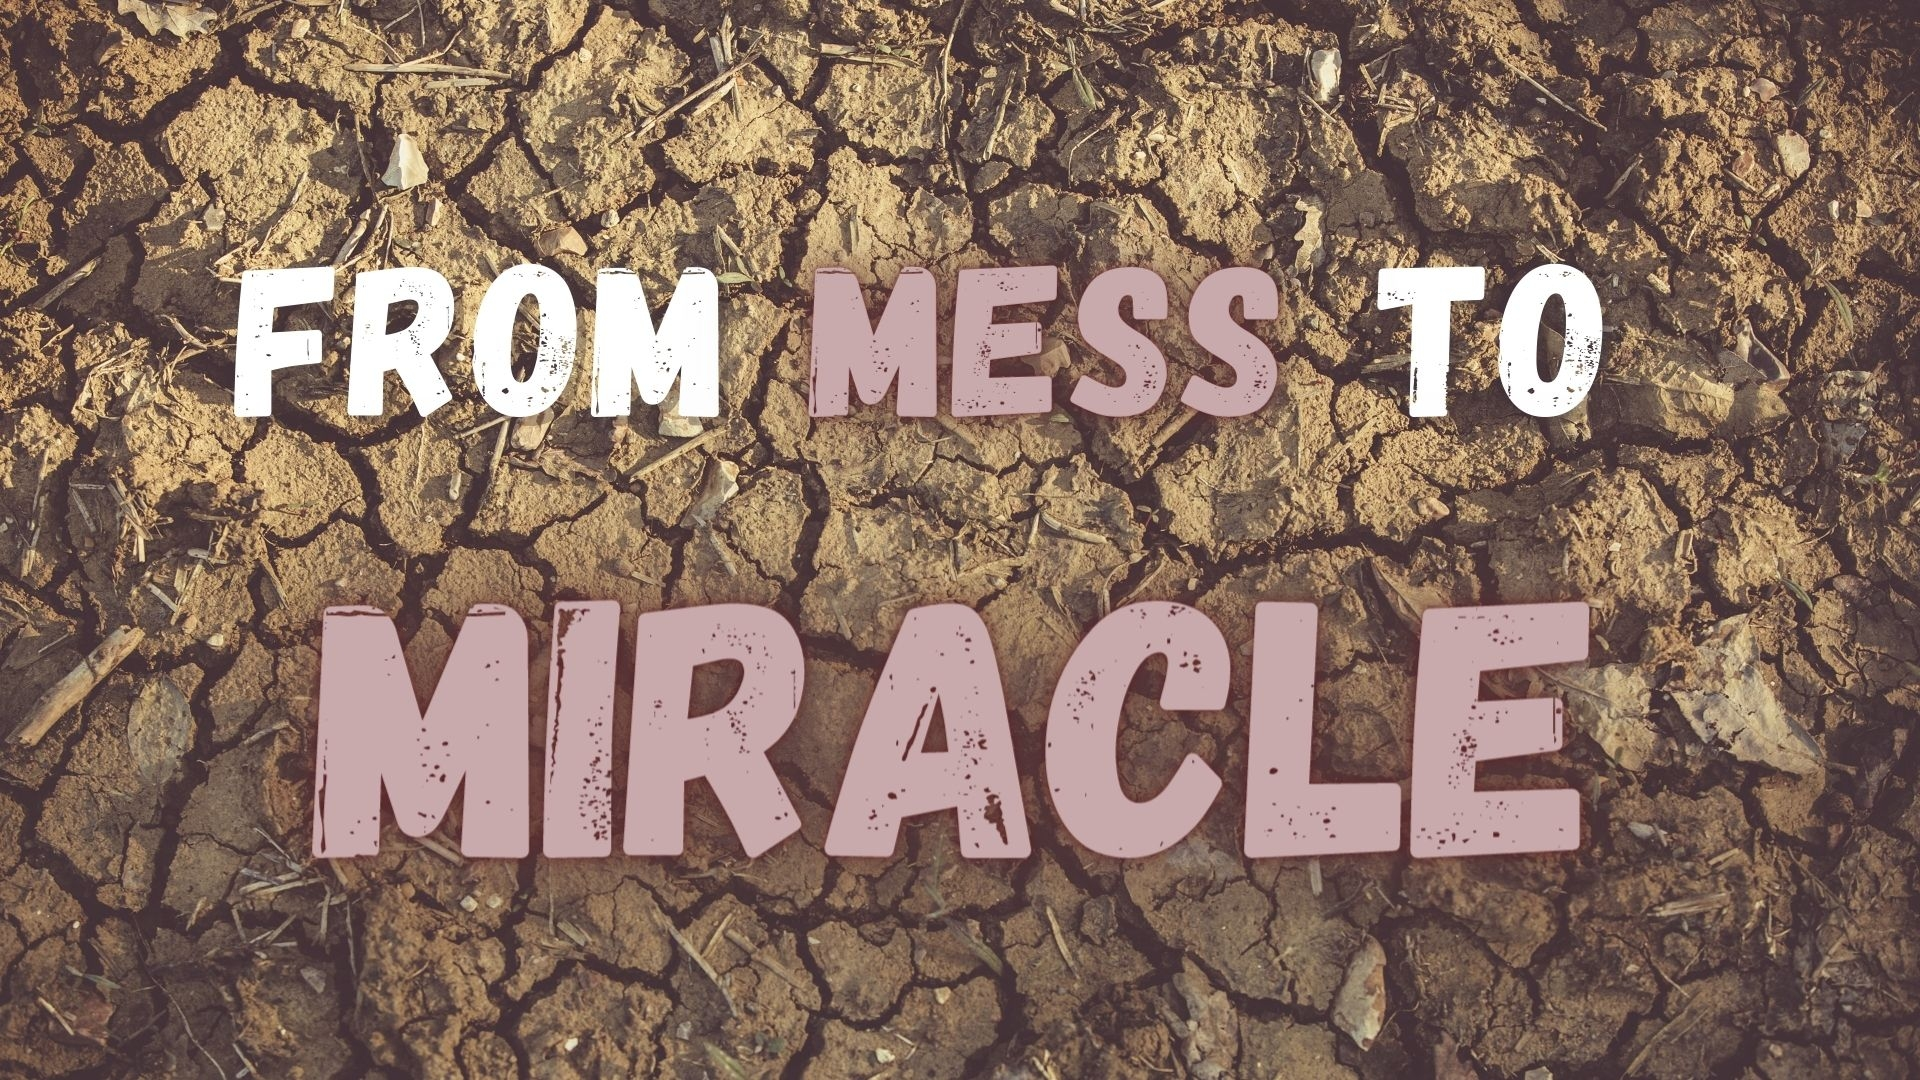 Sunday March 21, 2021 From Mess To Miracle - Rev. Rema Duncan